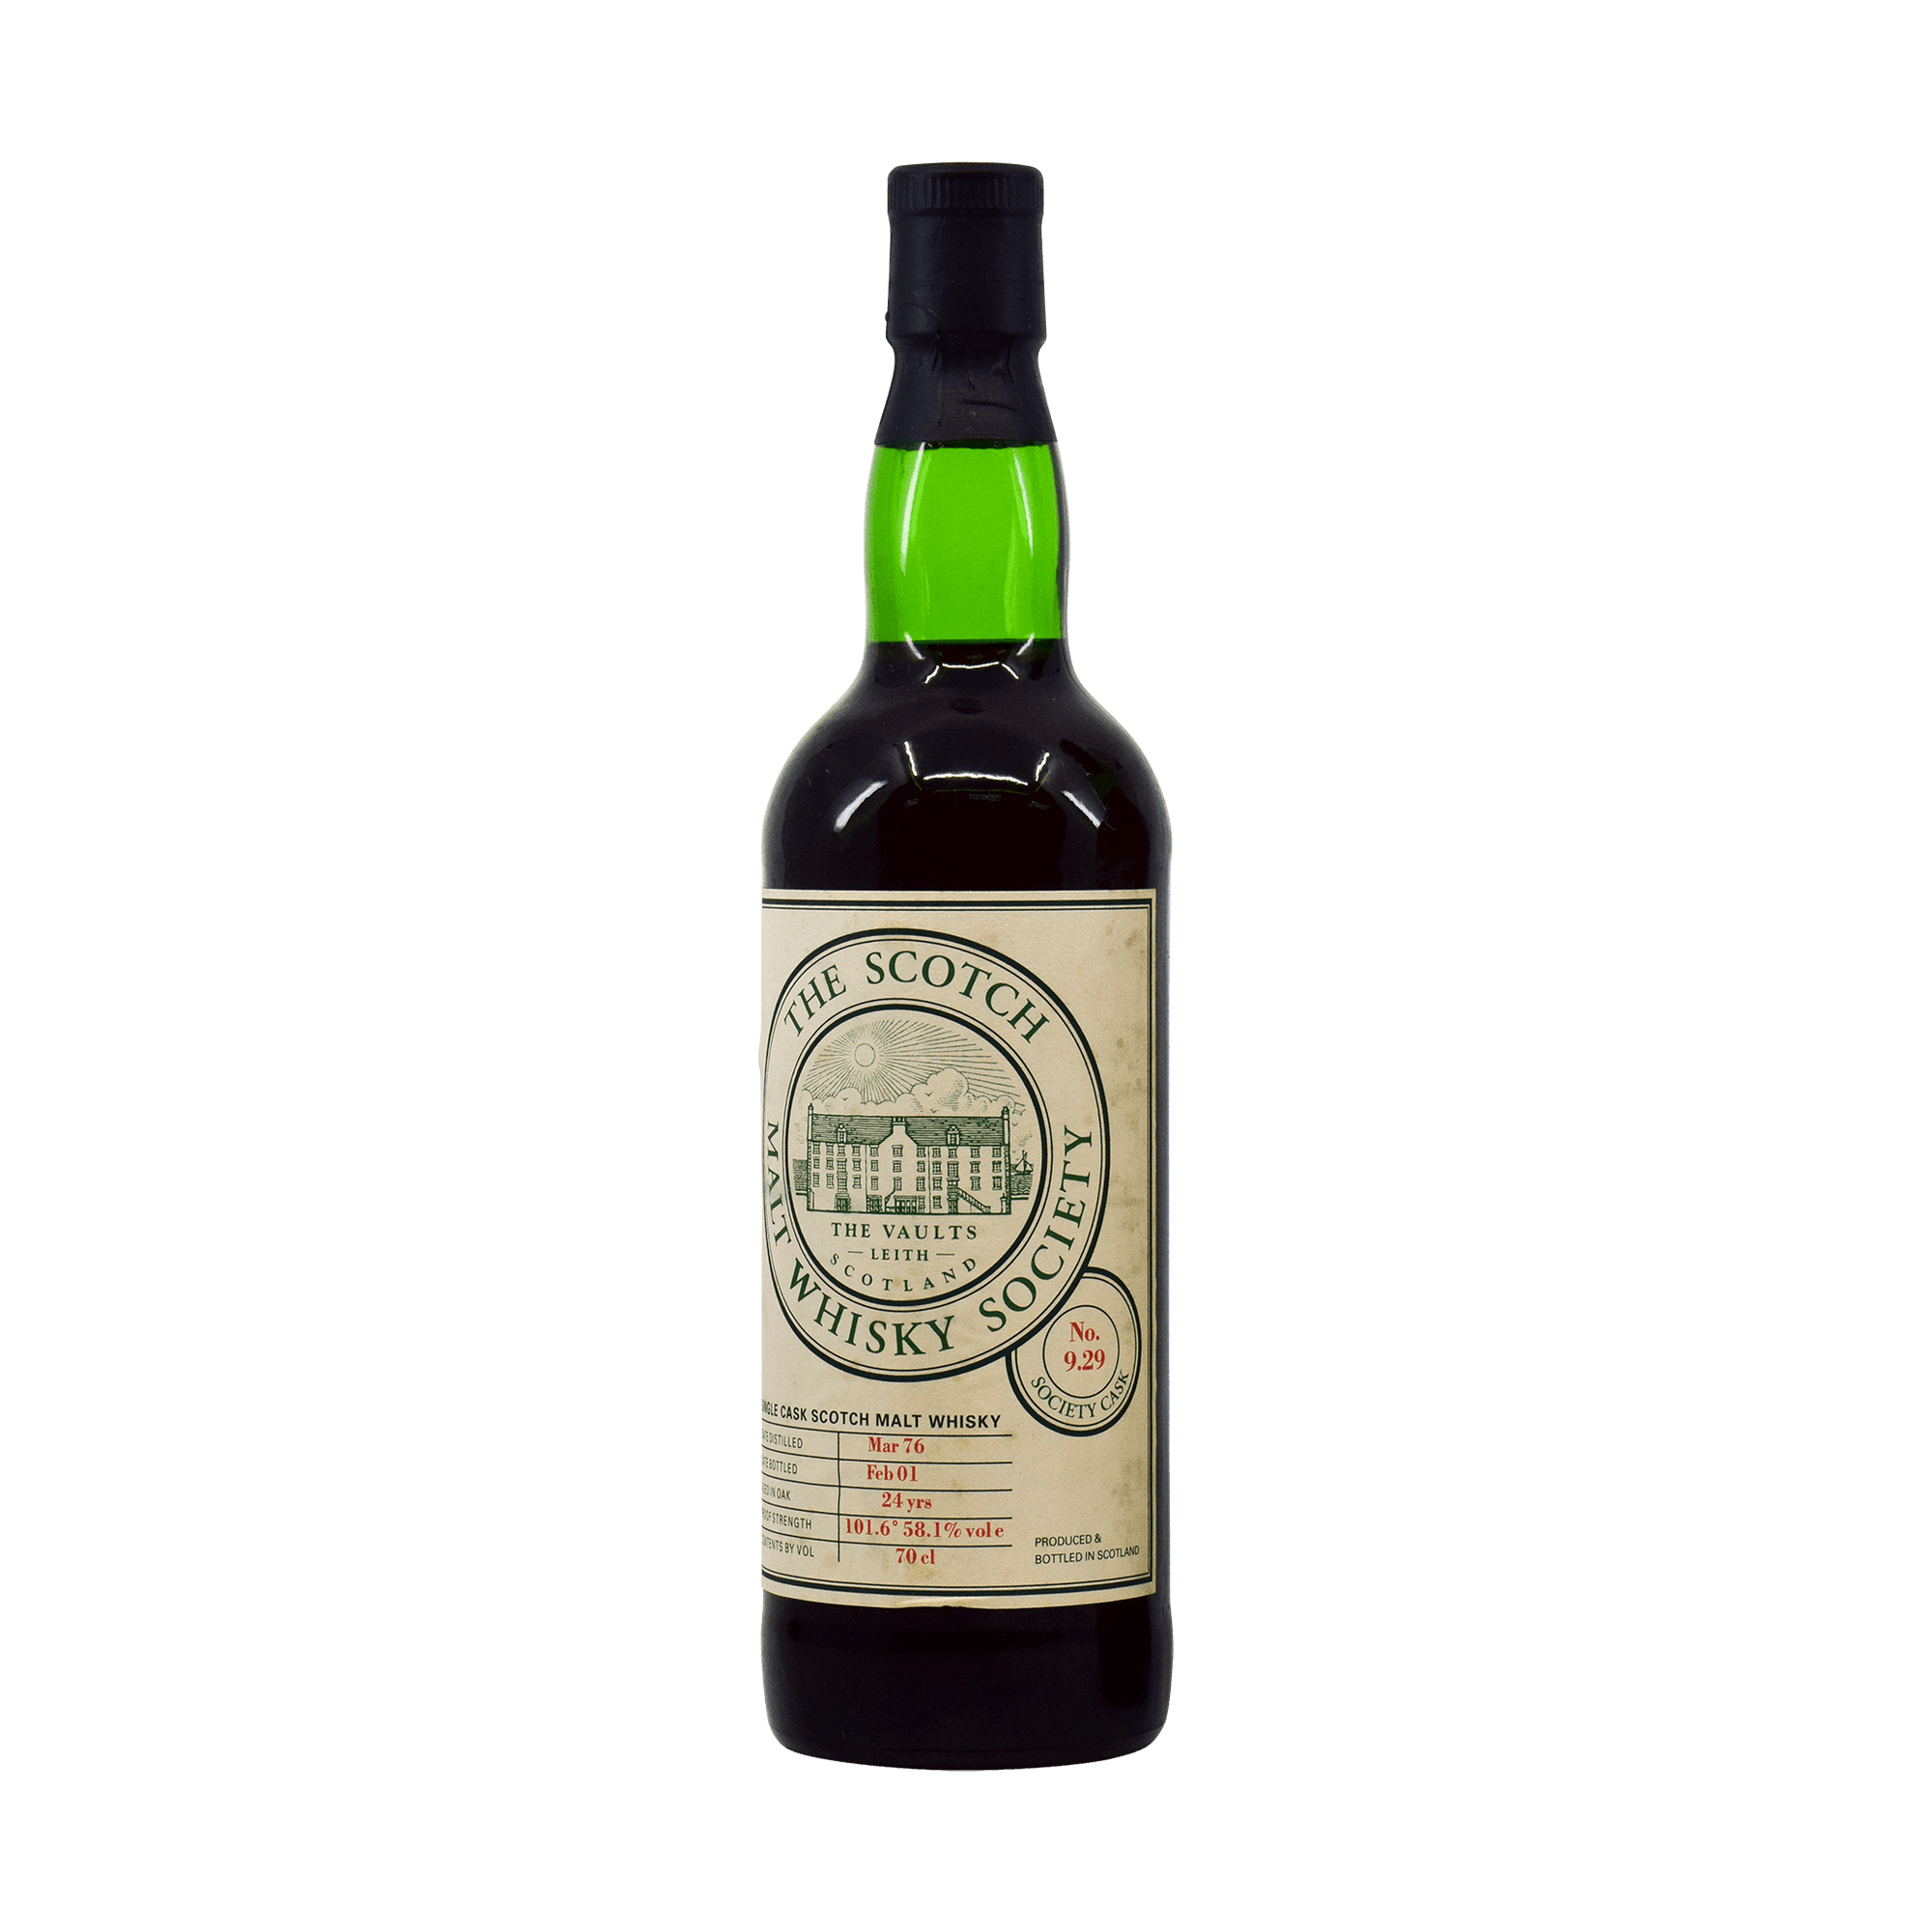 Glen Grant 1976 24 Year Old '9.29' SMWS 58.10% 70cl